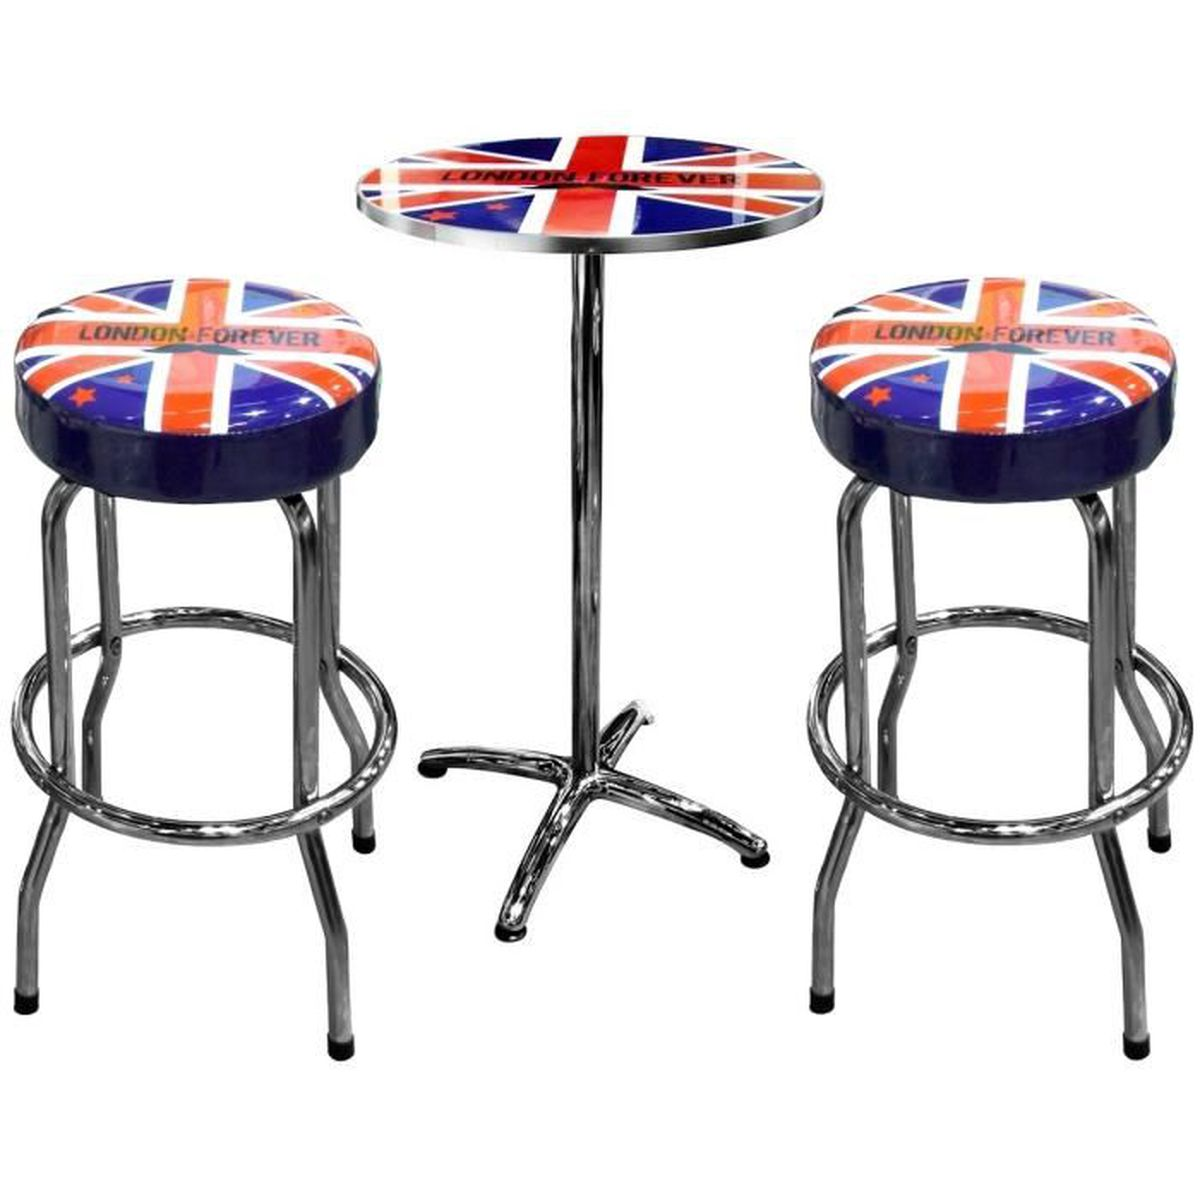 set ensemble terrasse de bistrot table en m tal deux tabouret d cor londres drapeau ru rouge. Black Bedroom Furniture Sets. Home Design Ideas